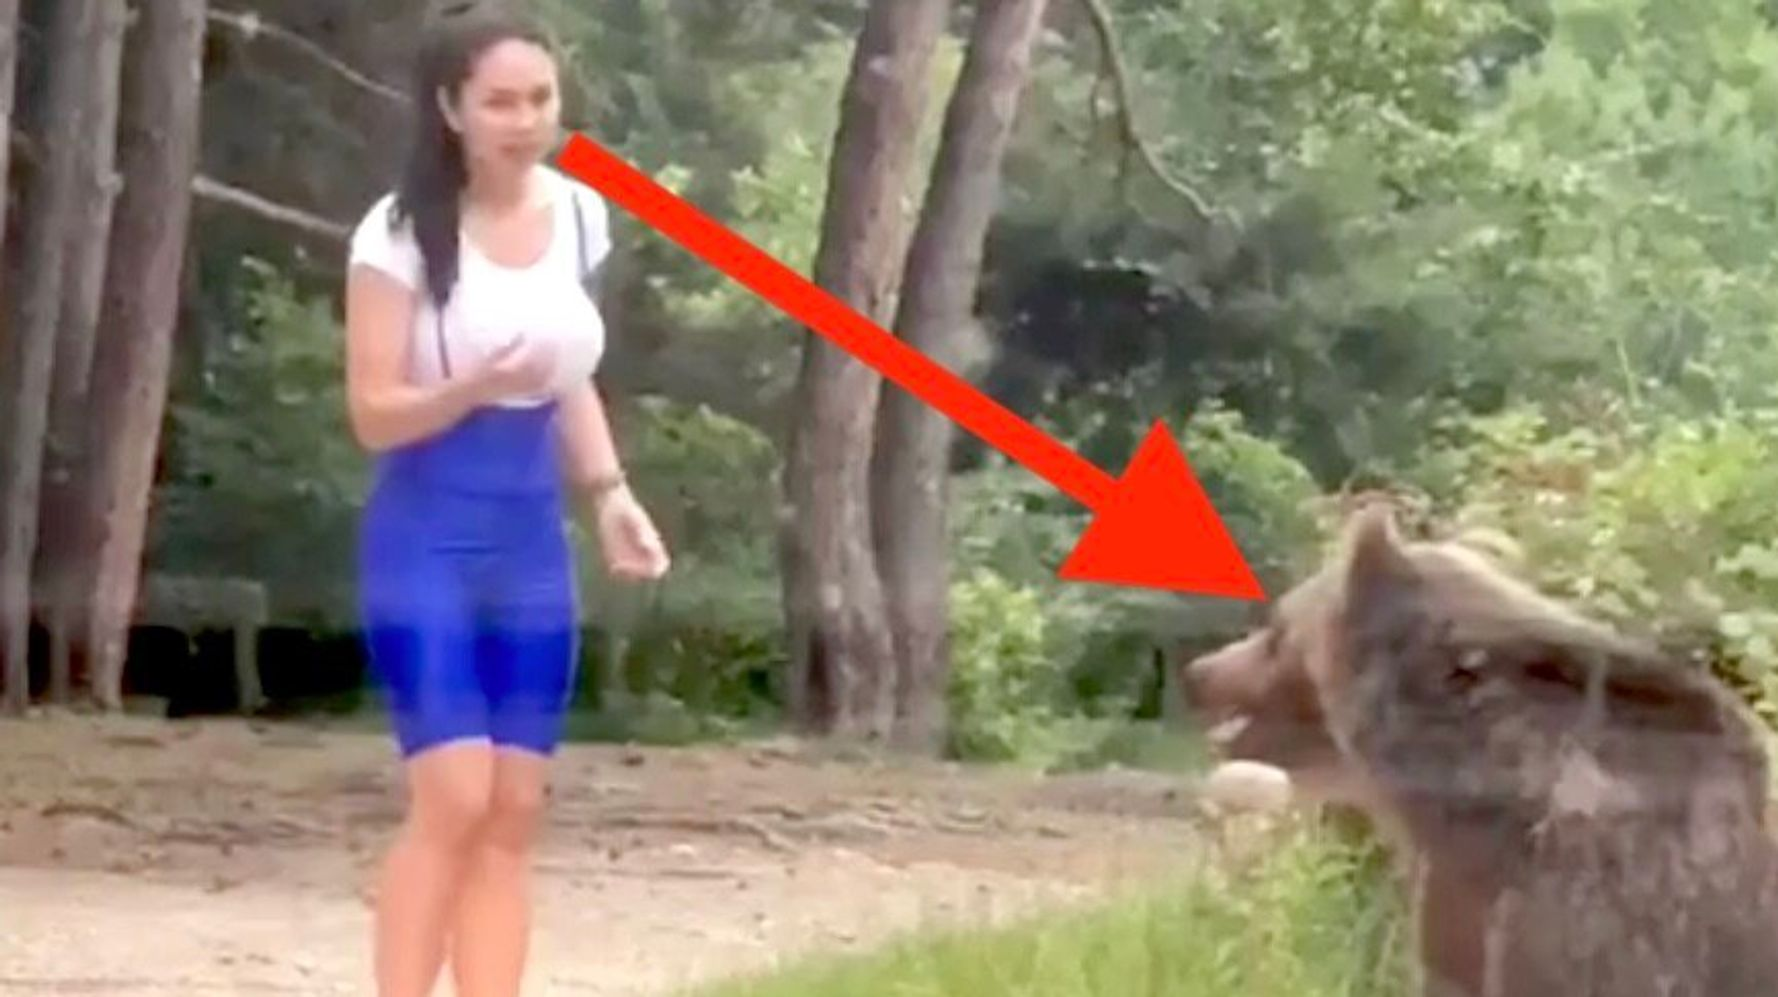 Here's A Quick Lesson On Why You Should Never, Ever Approach A Bear